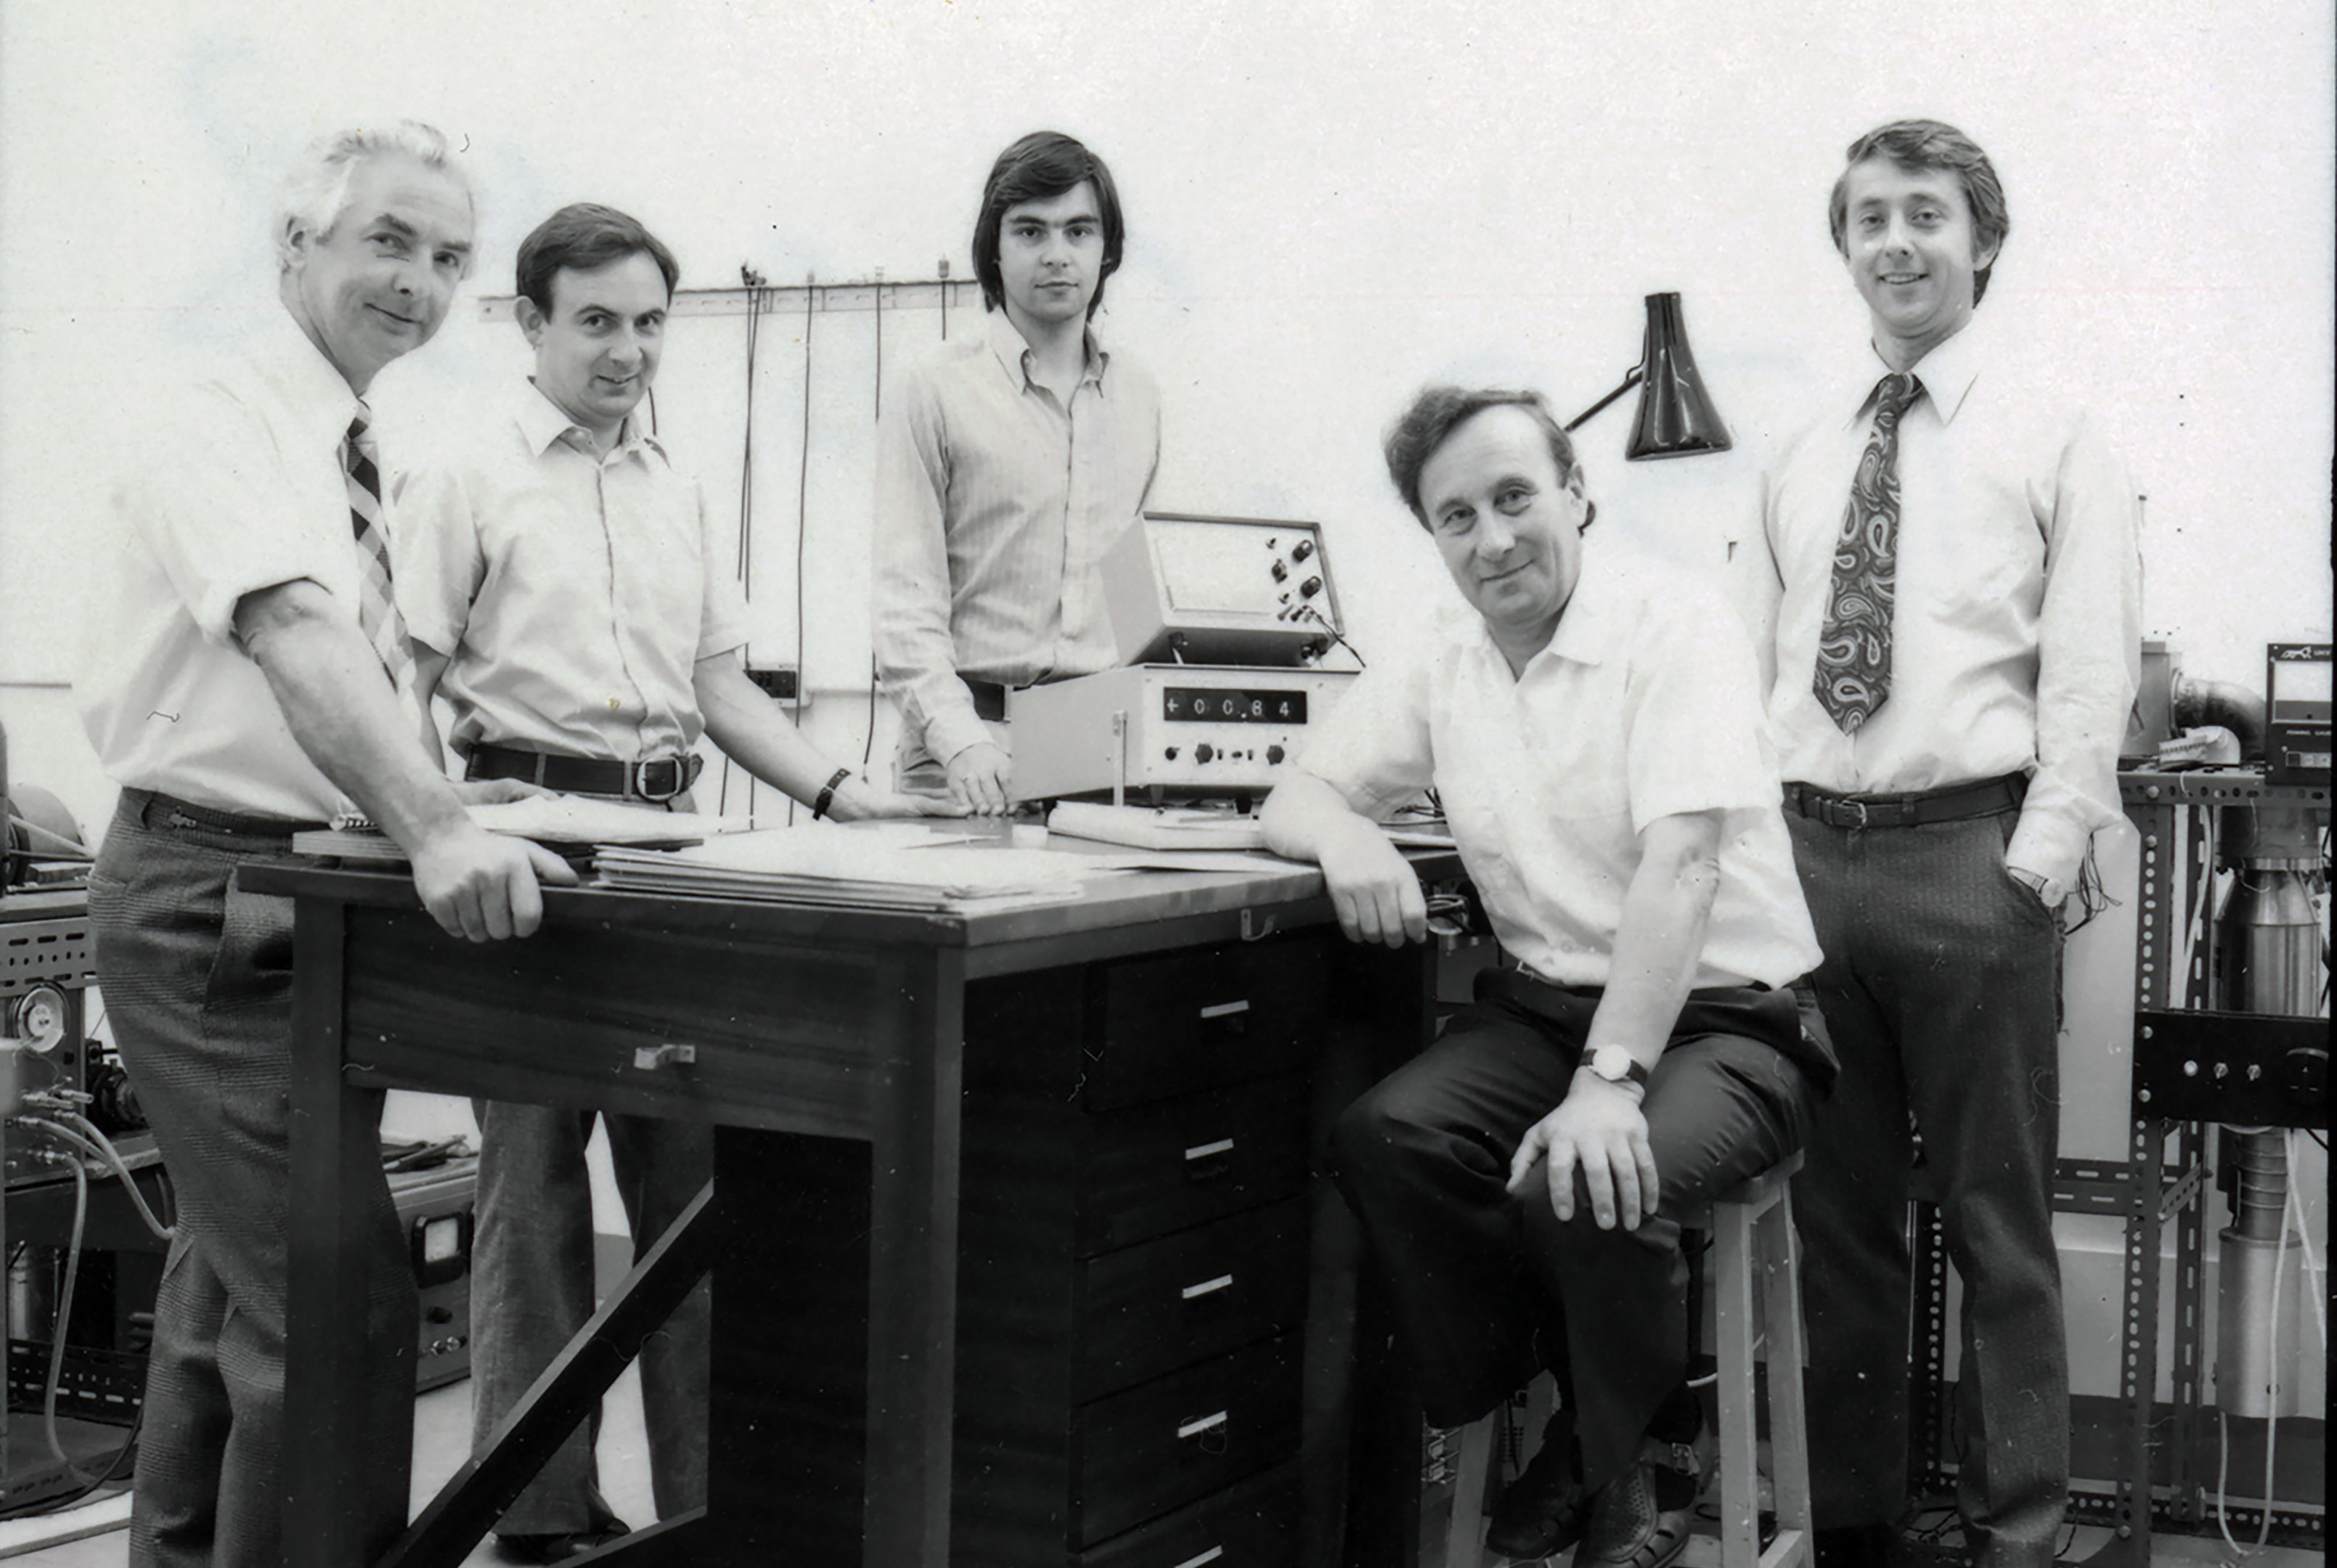 Professor Spear (seated second from right) and Professor LeComber (standing, far right) and research group in the 1970s.